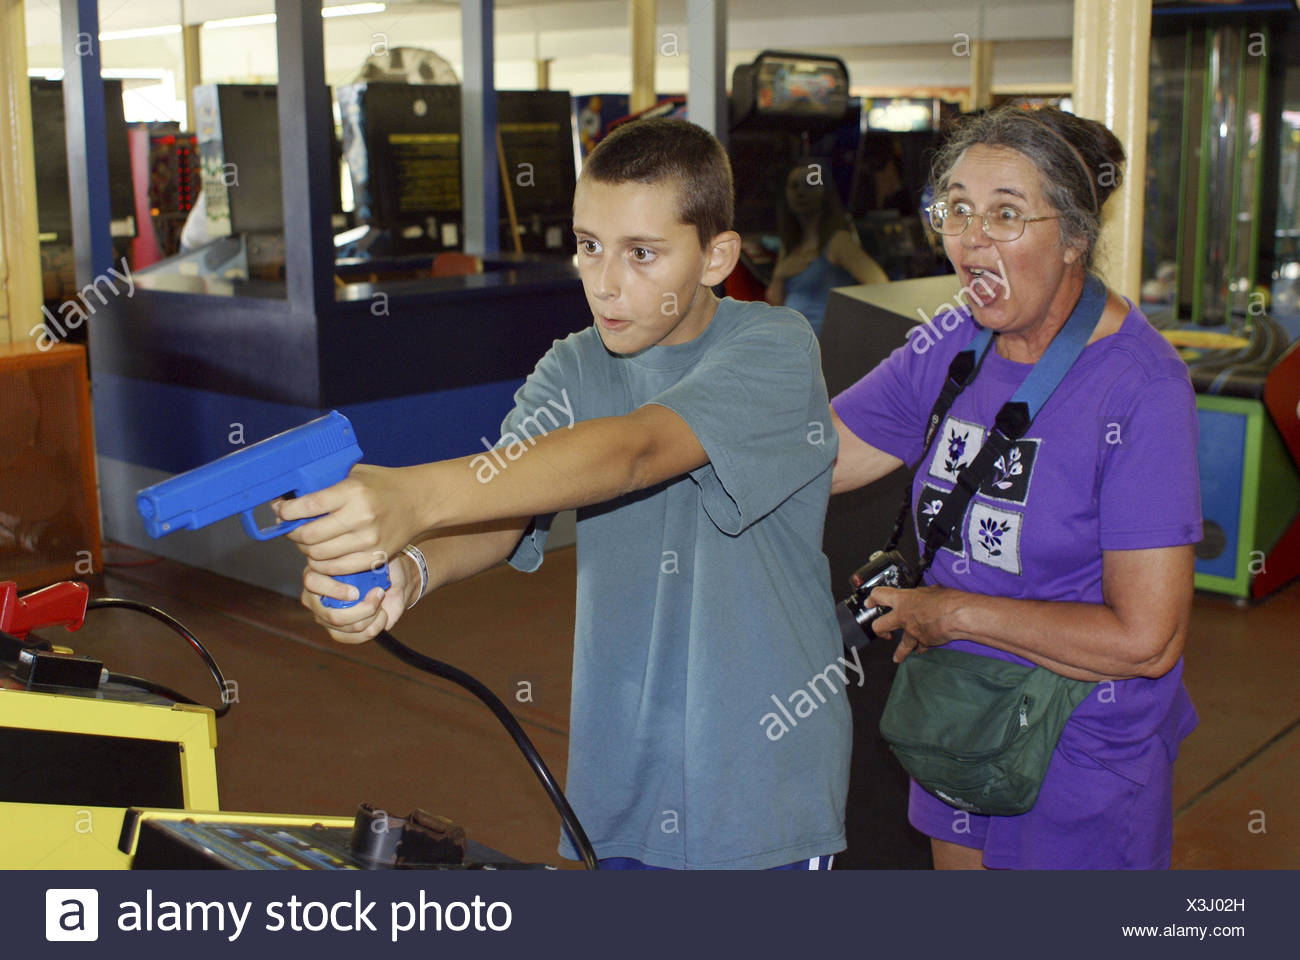 Woman excited by grandson´s accuracy at a game in an arcade. - Stock Image